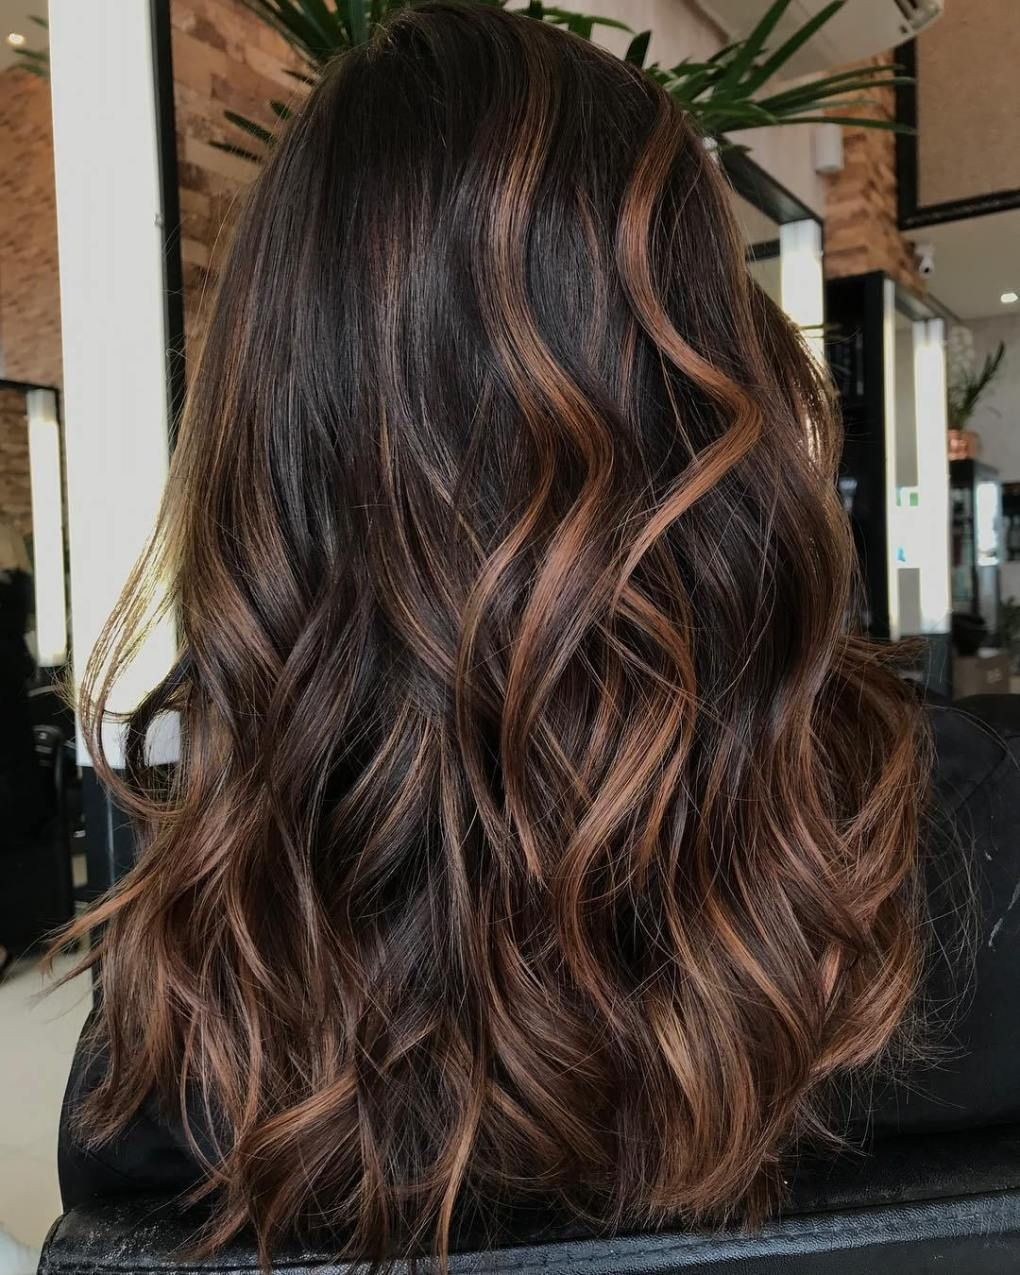 20 Impressive Haircuts And Hairstyles For Long Dark Brown Hair Brown Hair Colors Brown Hair With Highlights Brunette Hair Color